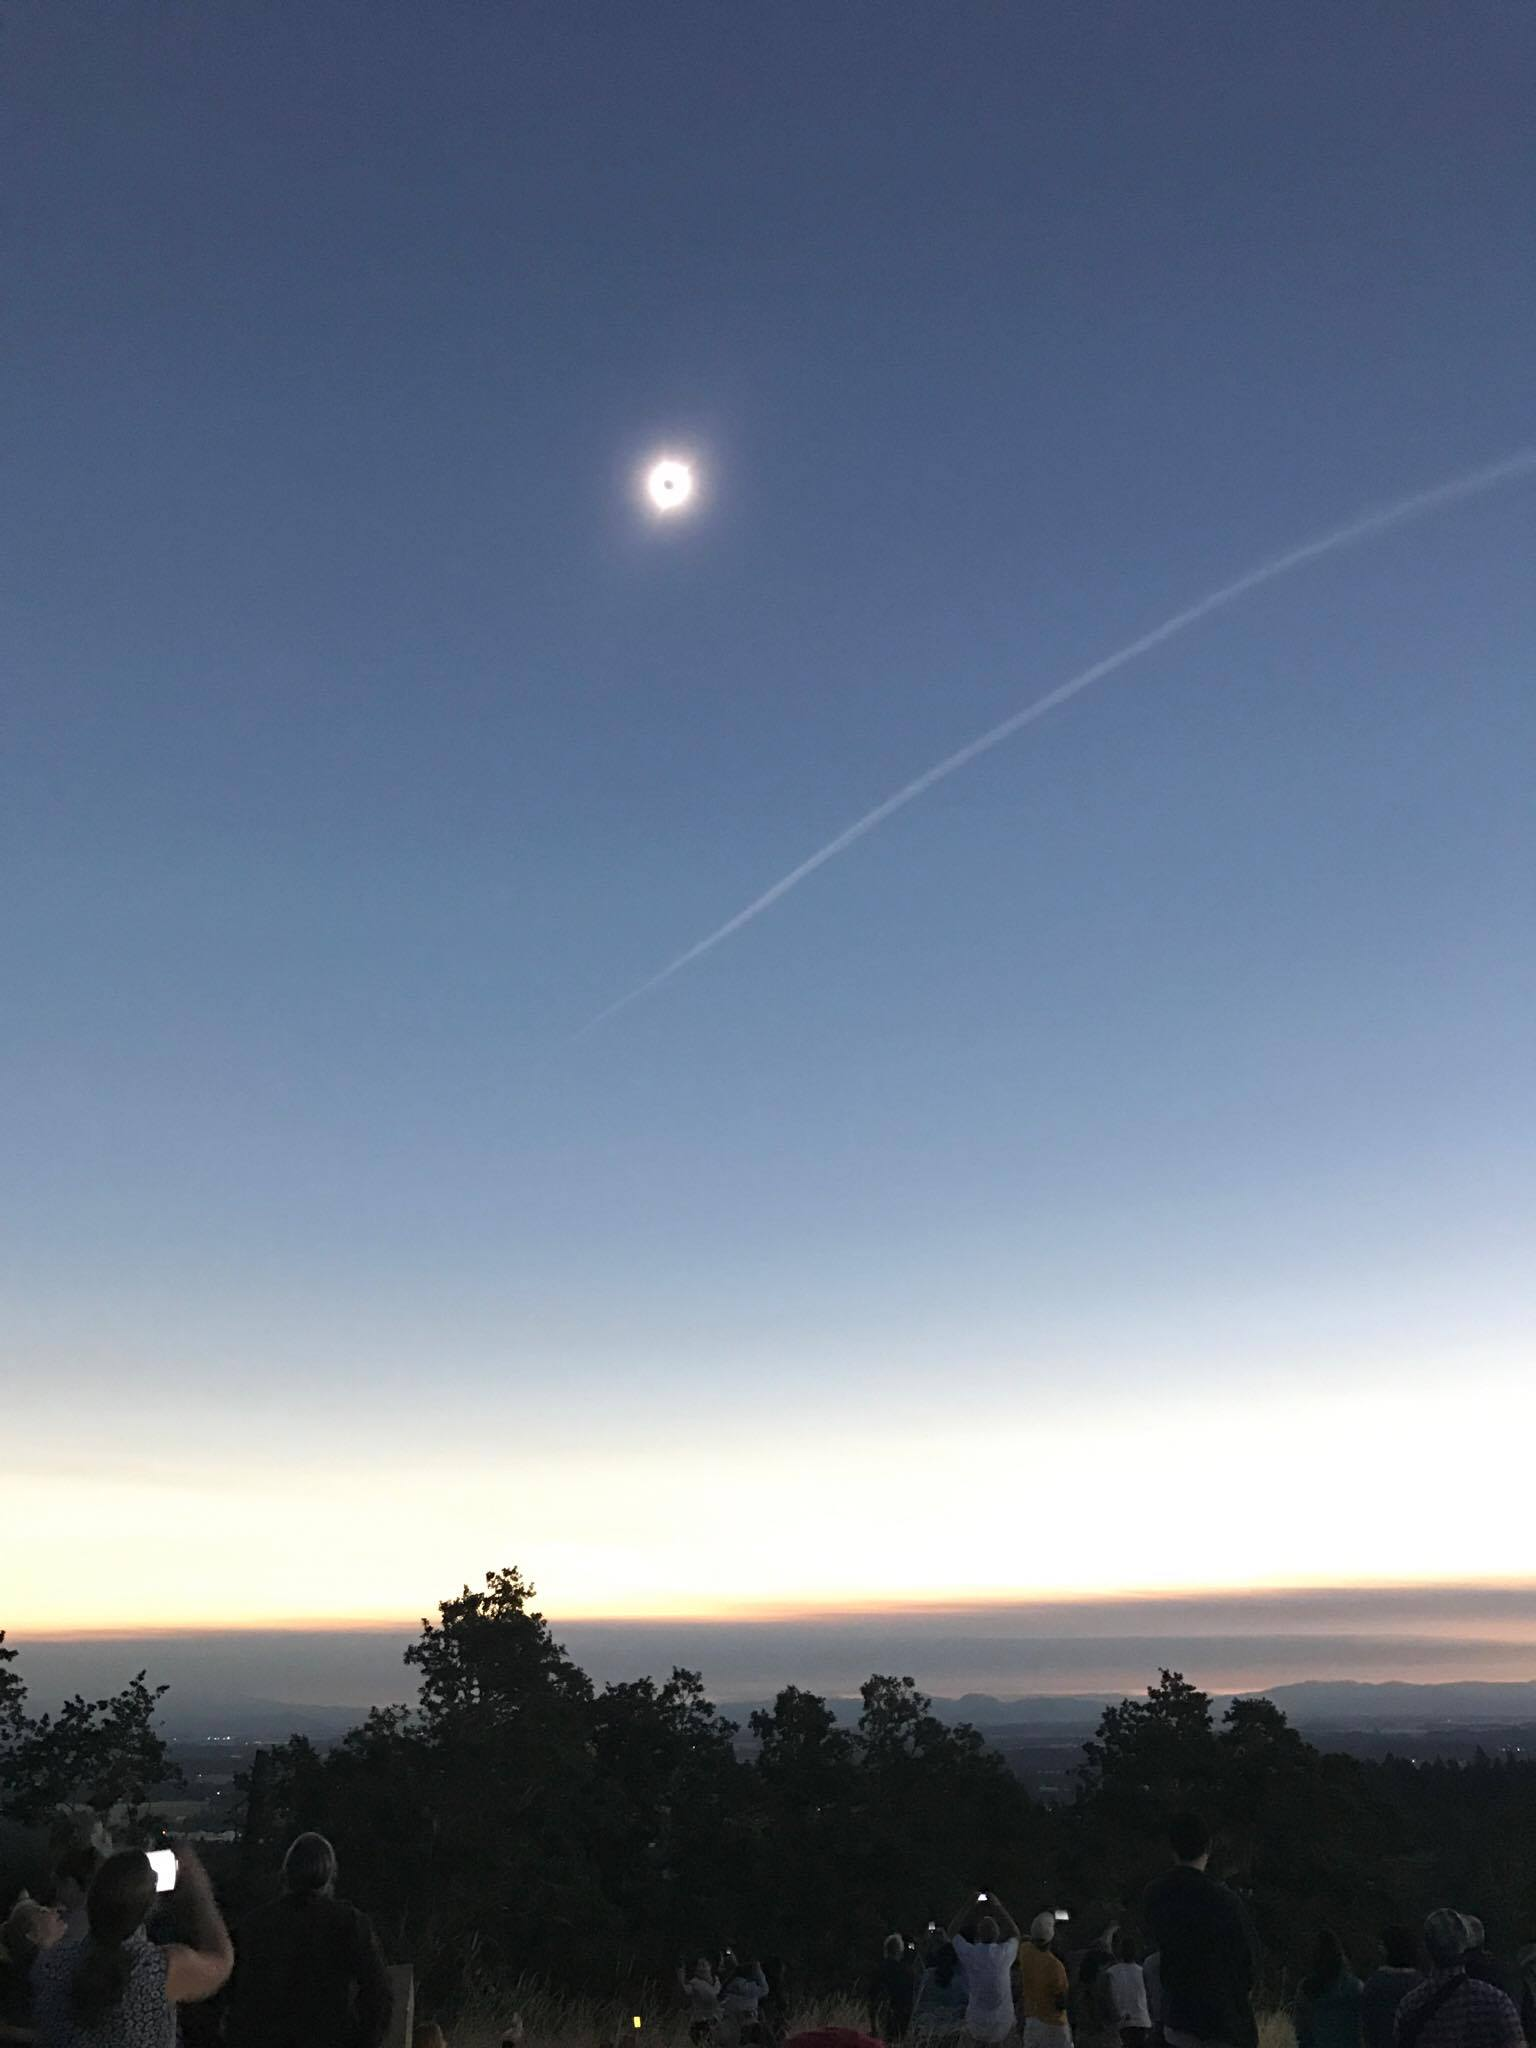 Totality over Chip Ross Park, accompanied by a jet contrail.